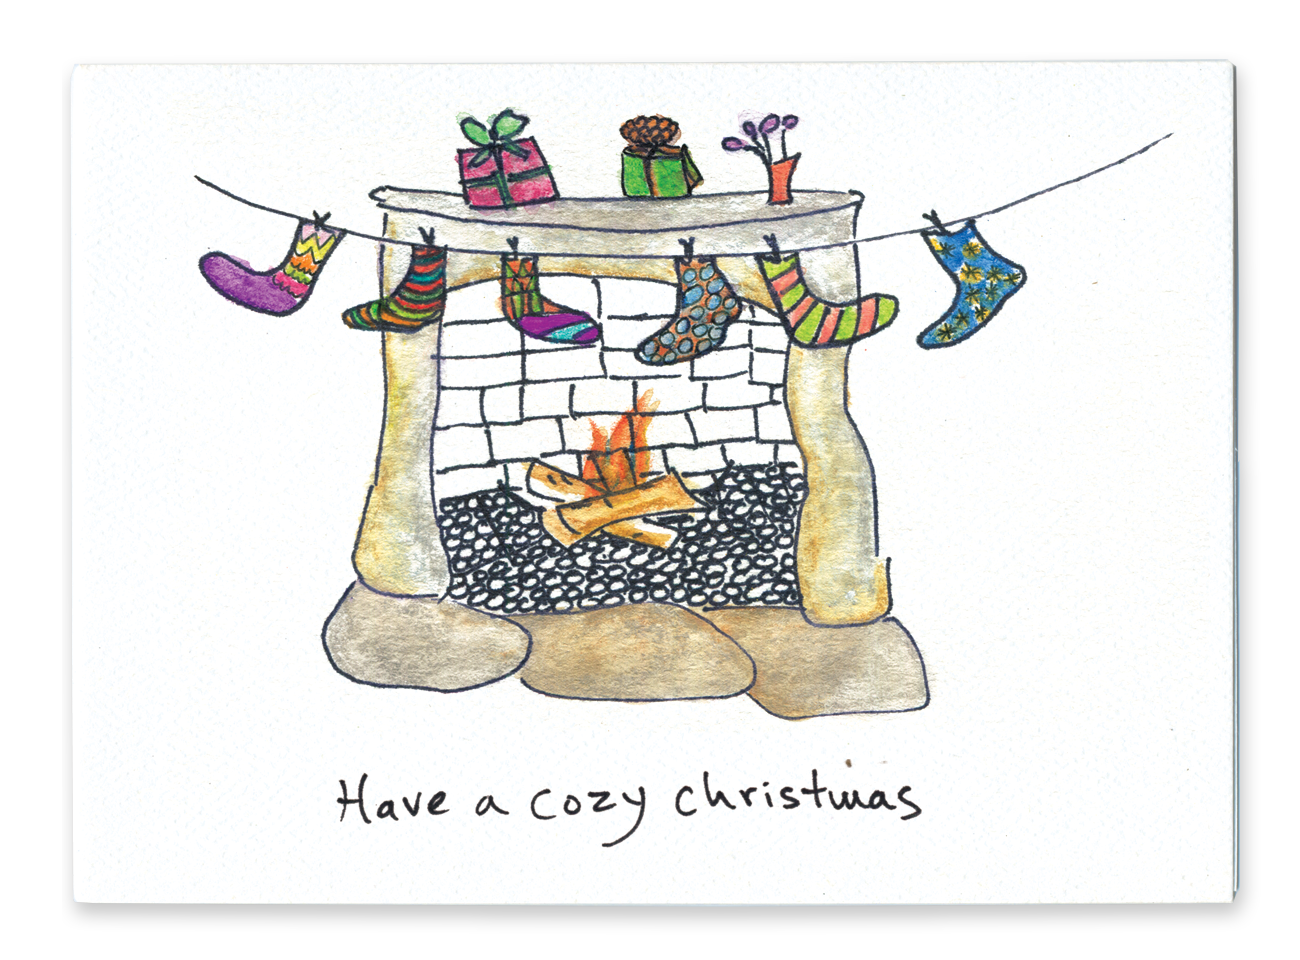 Have a Cozy Christmas